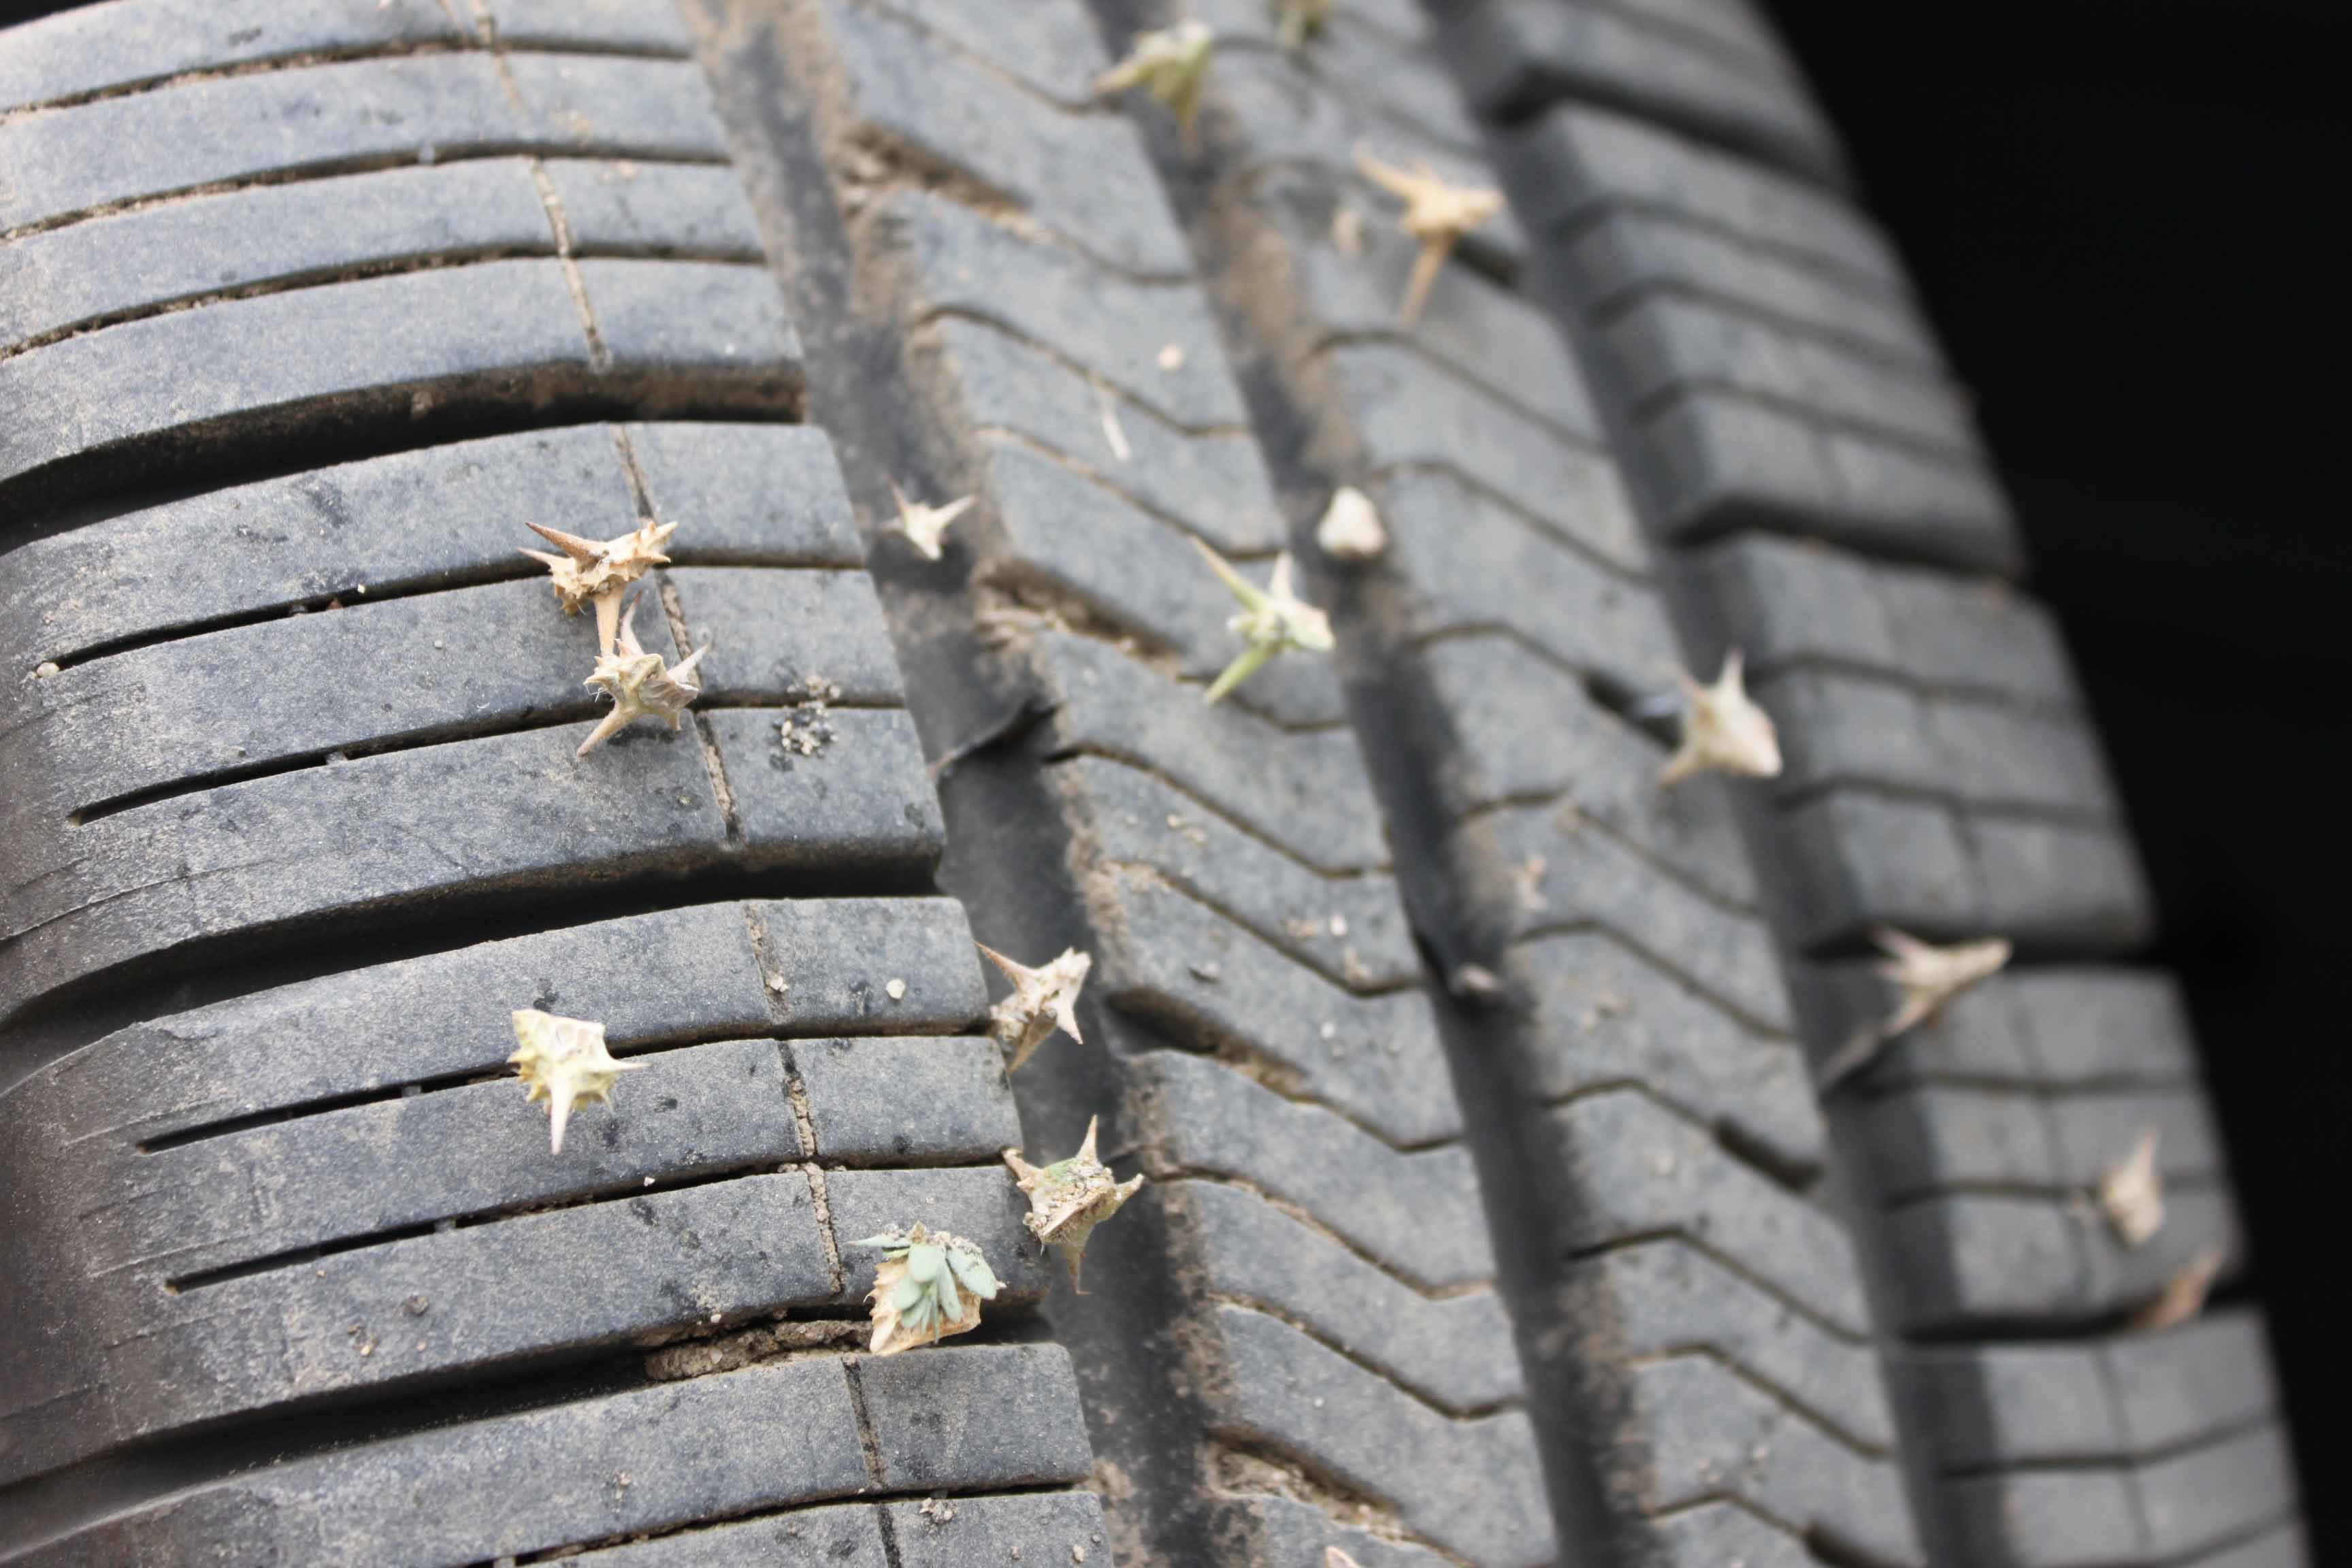 Puncturevine on Tire